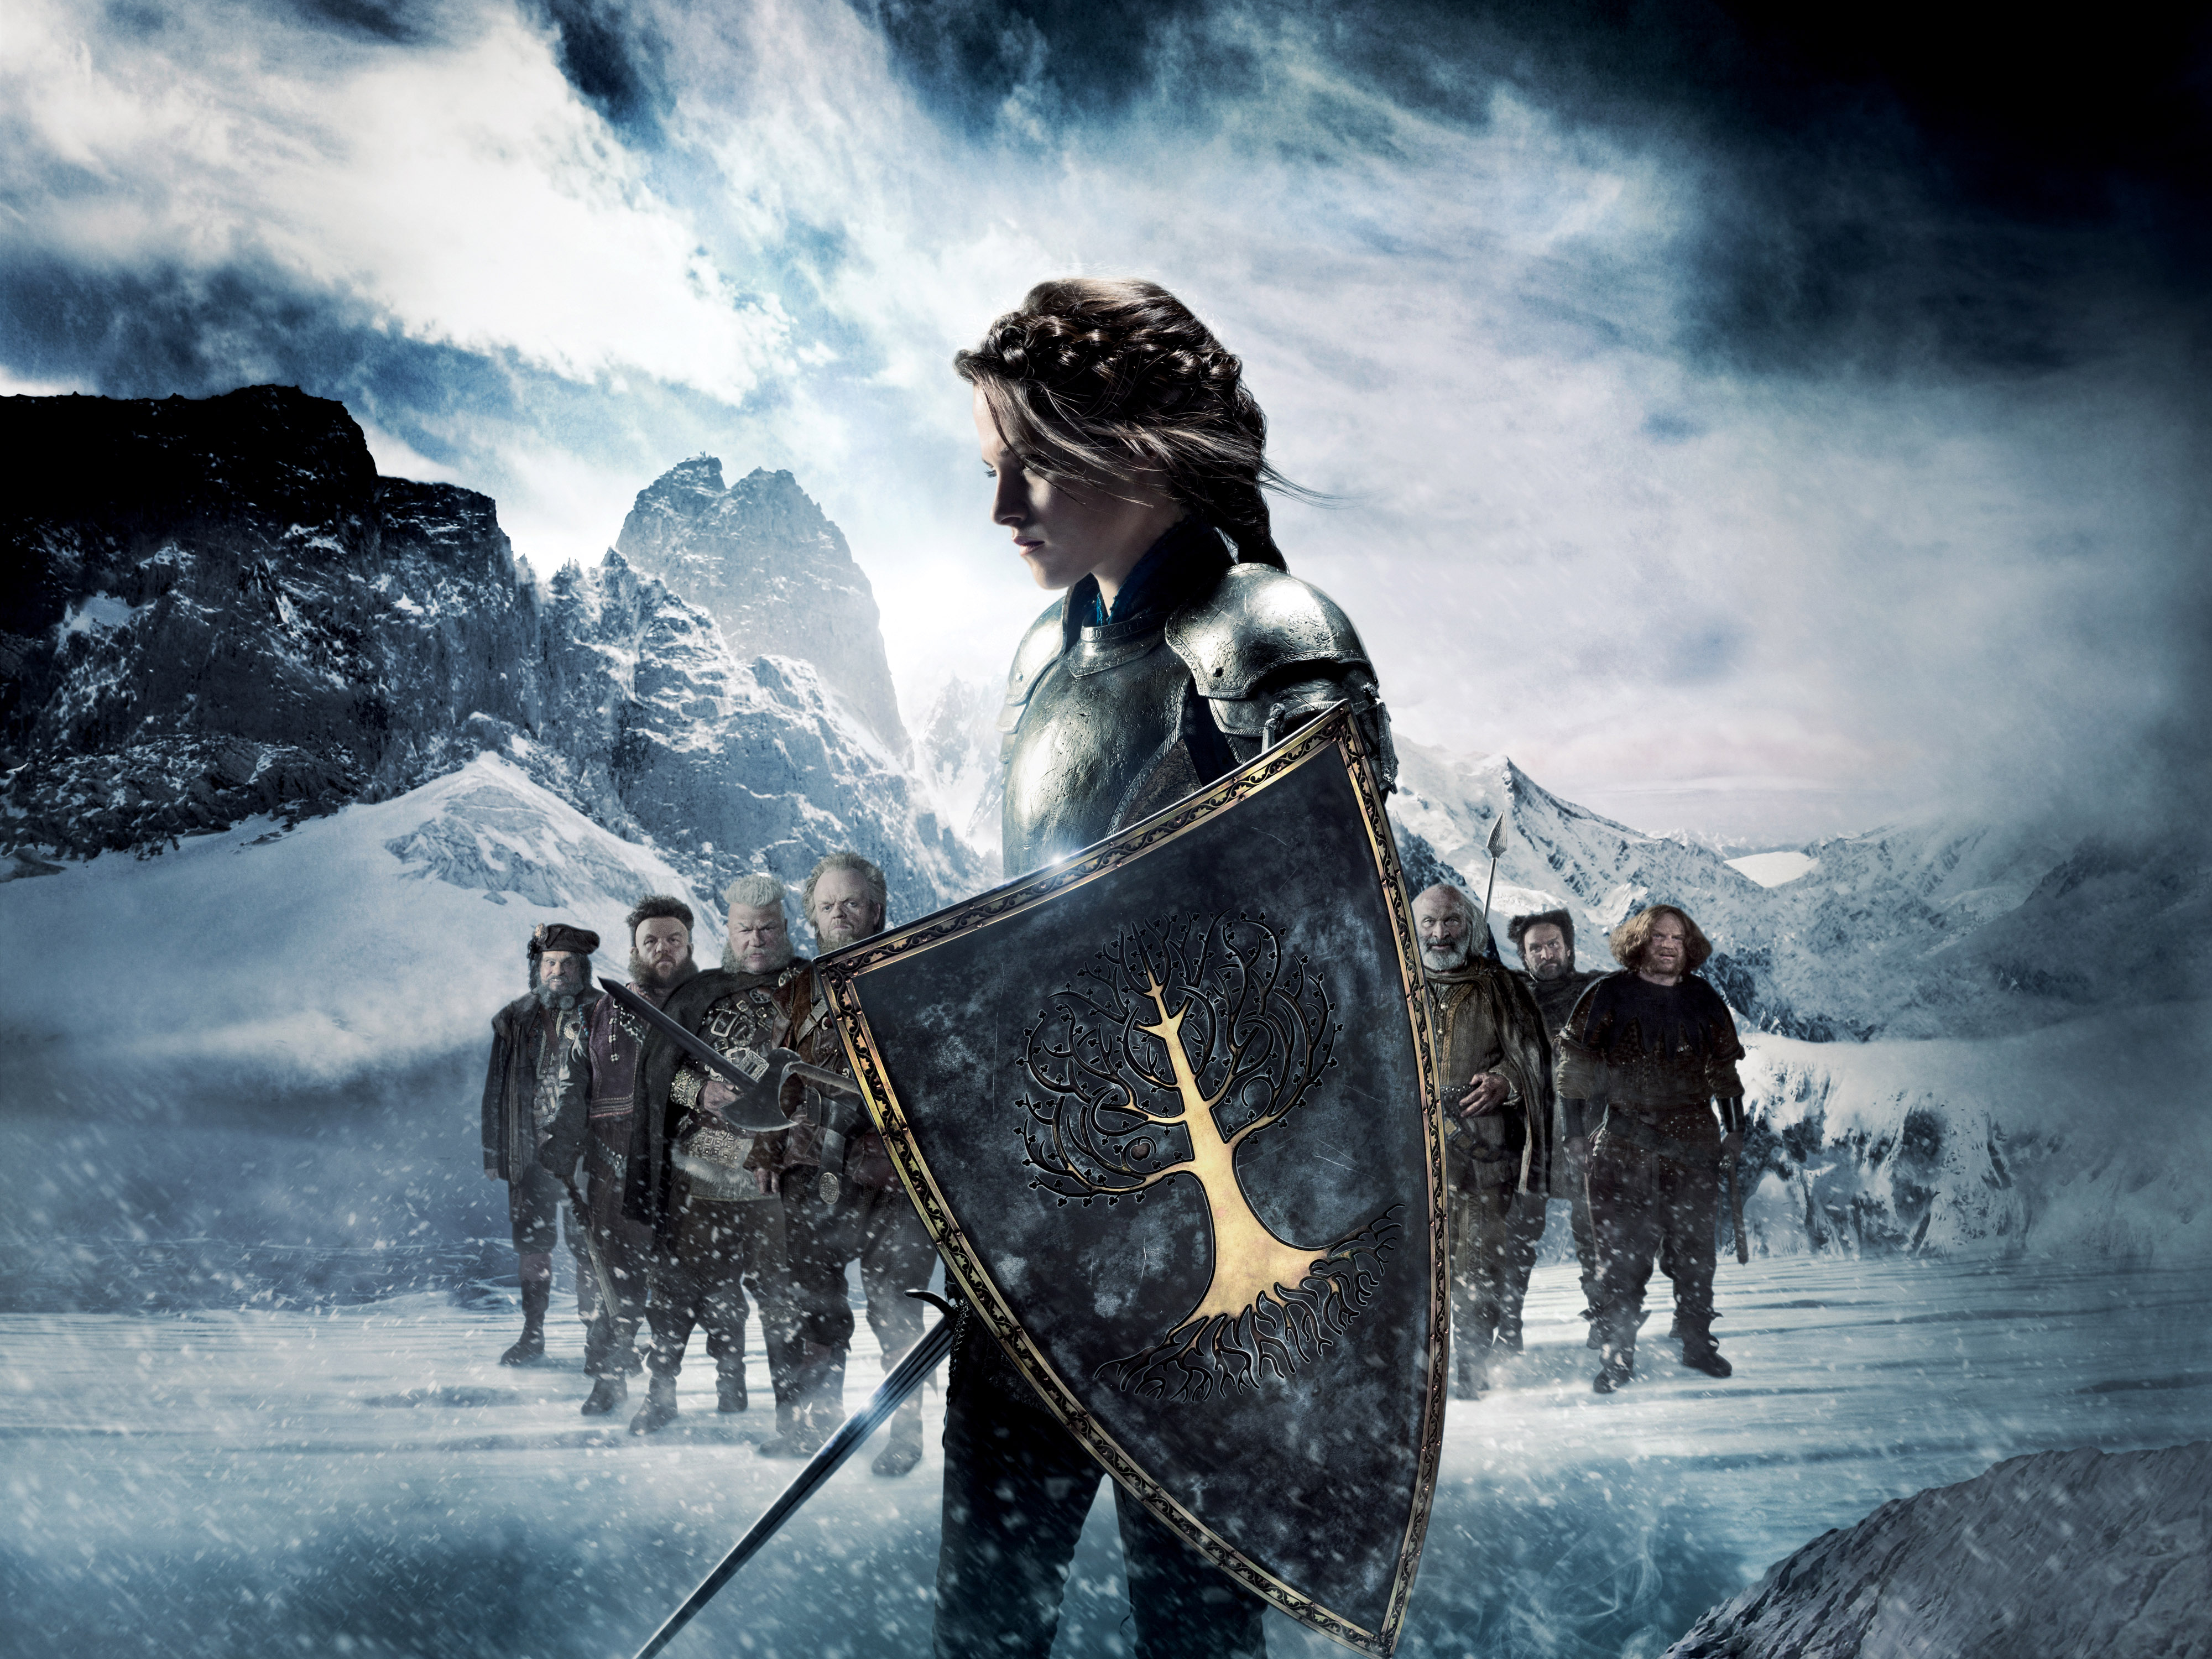 Snow White And The Huntsman 4k Ultra HD Wallpaper ...